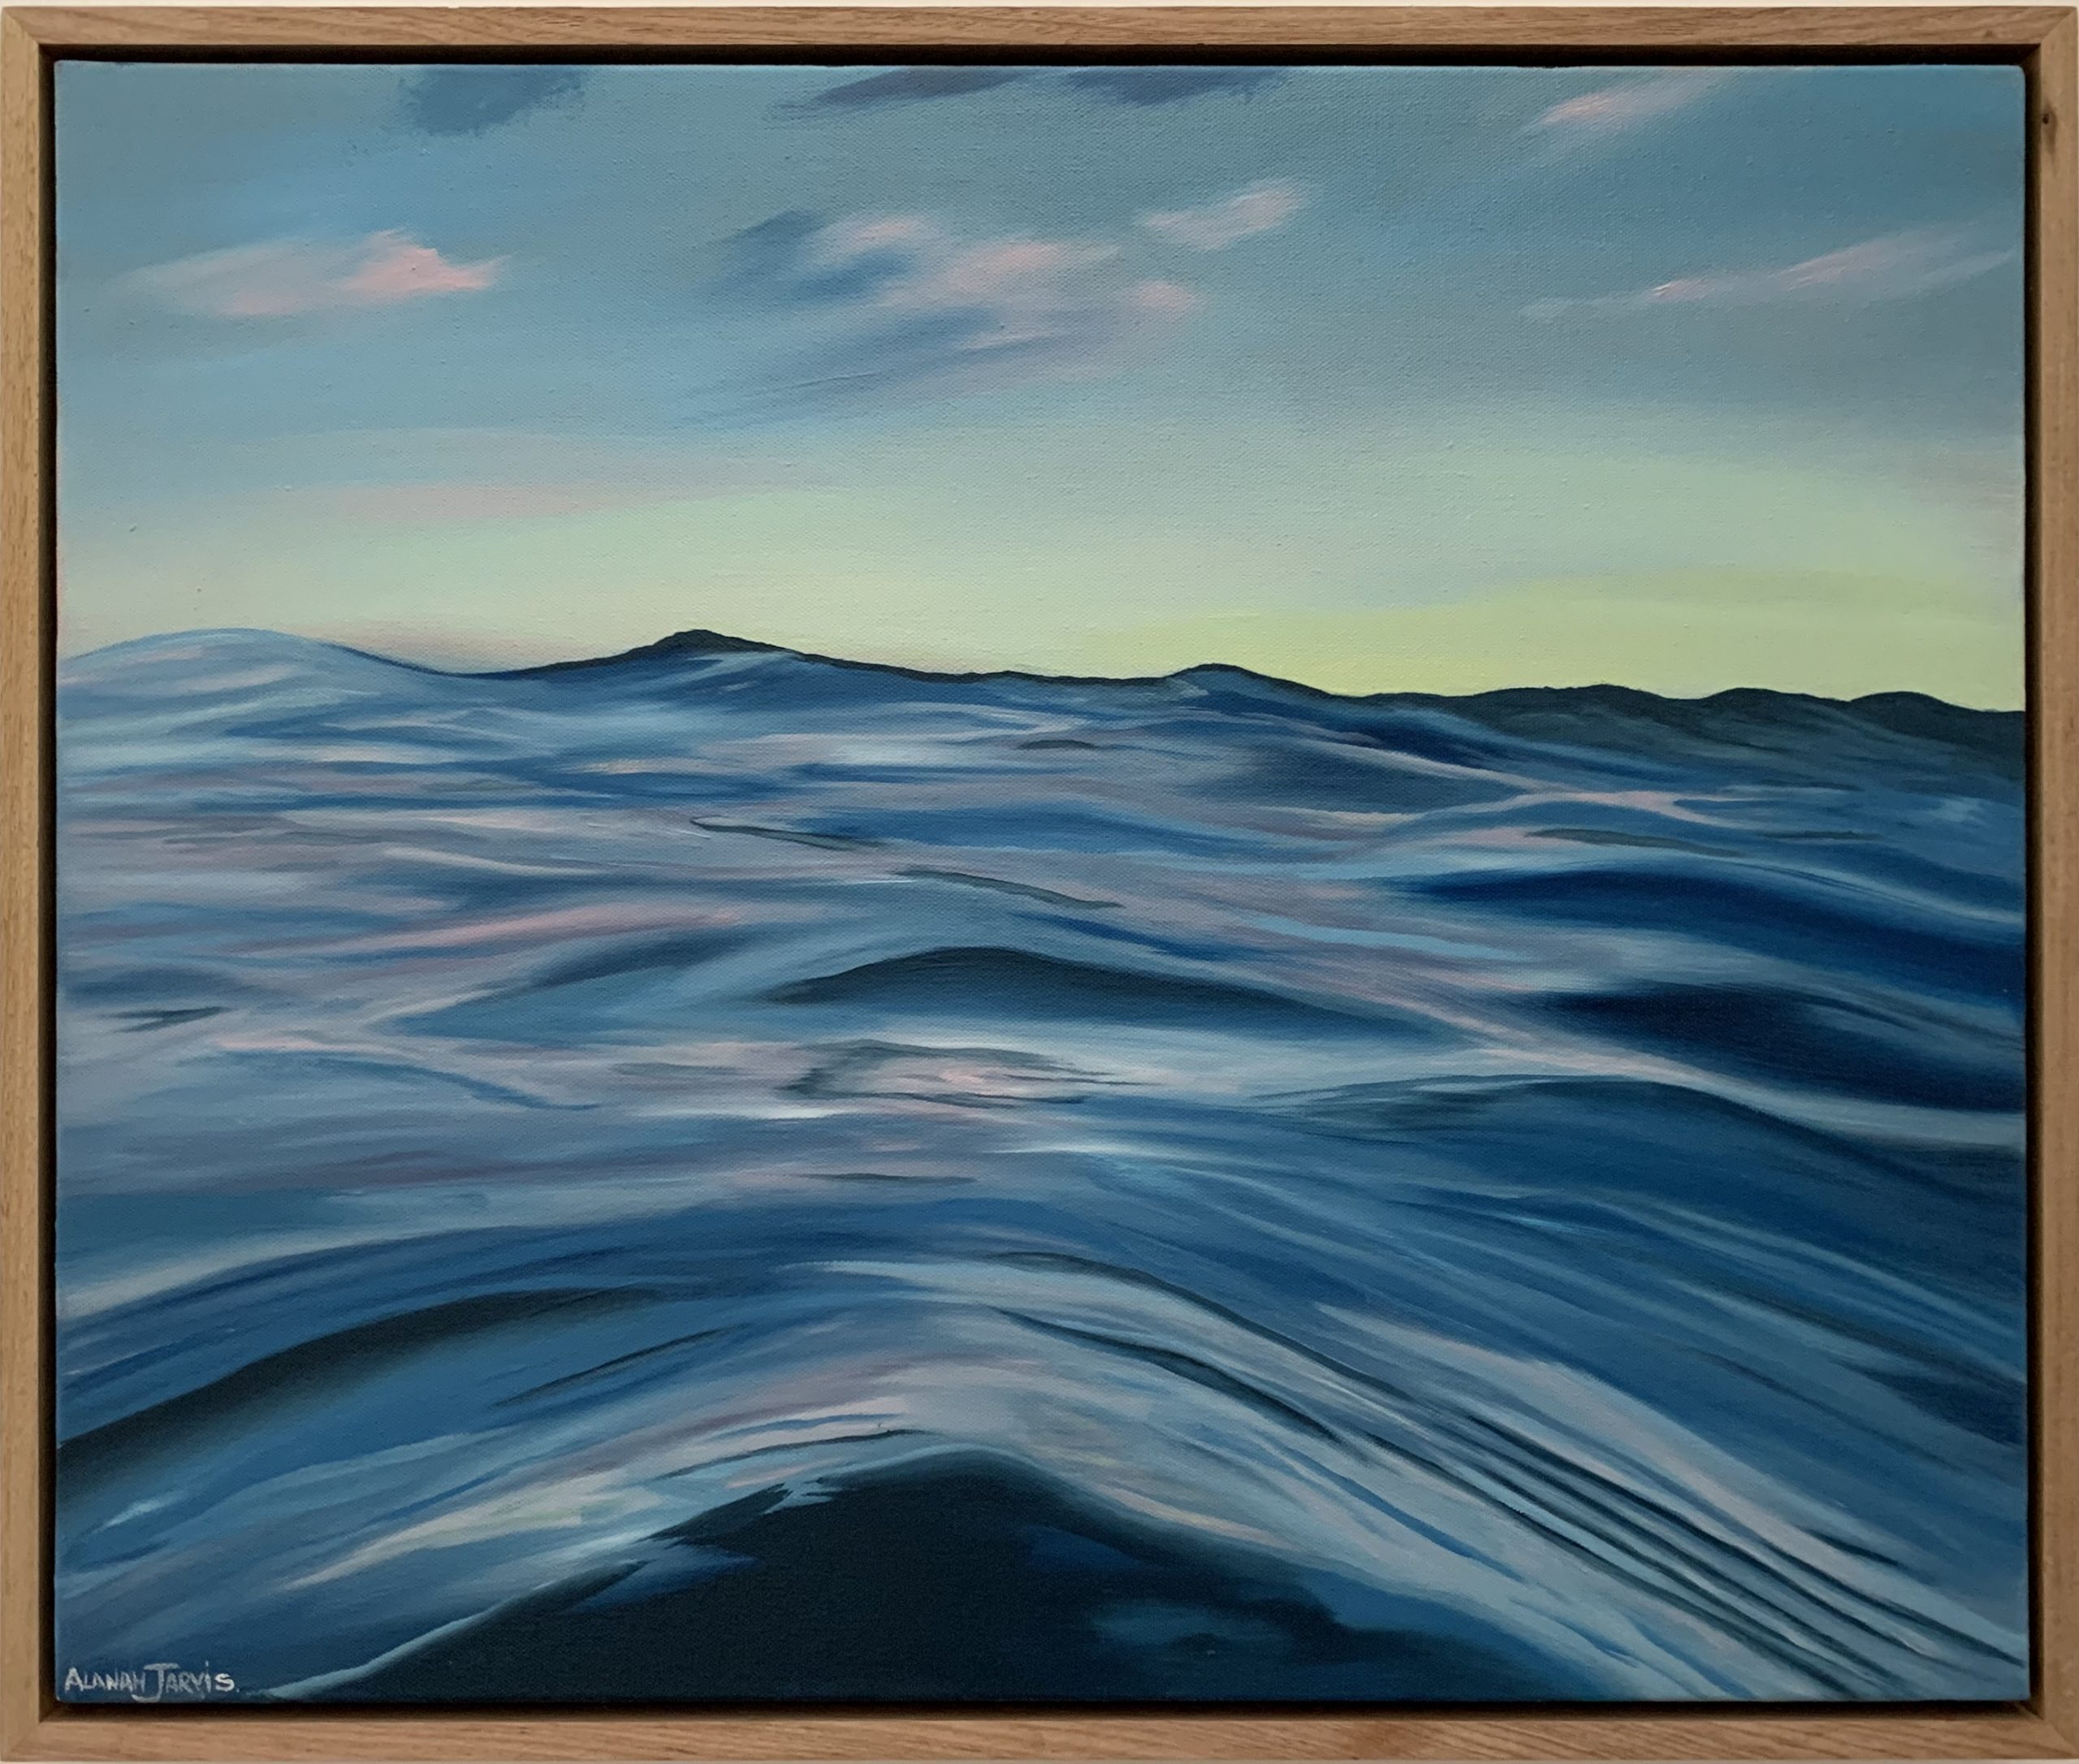 Hoverlay Image Thalassophile Alanah Jarvis Ocean Painting